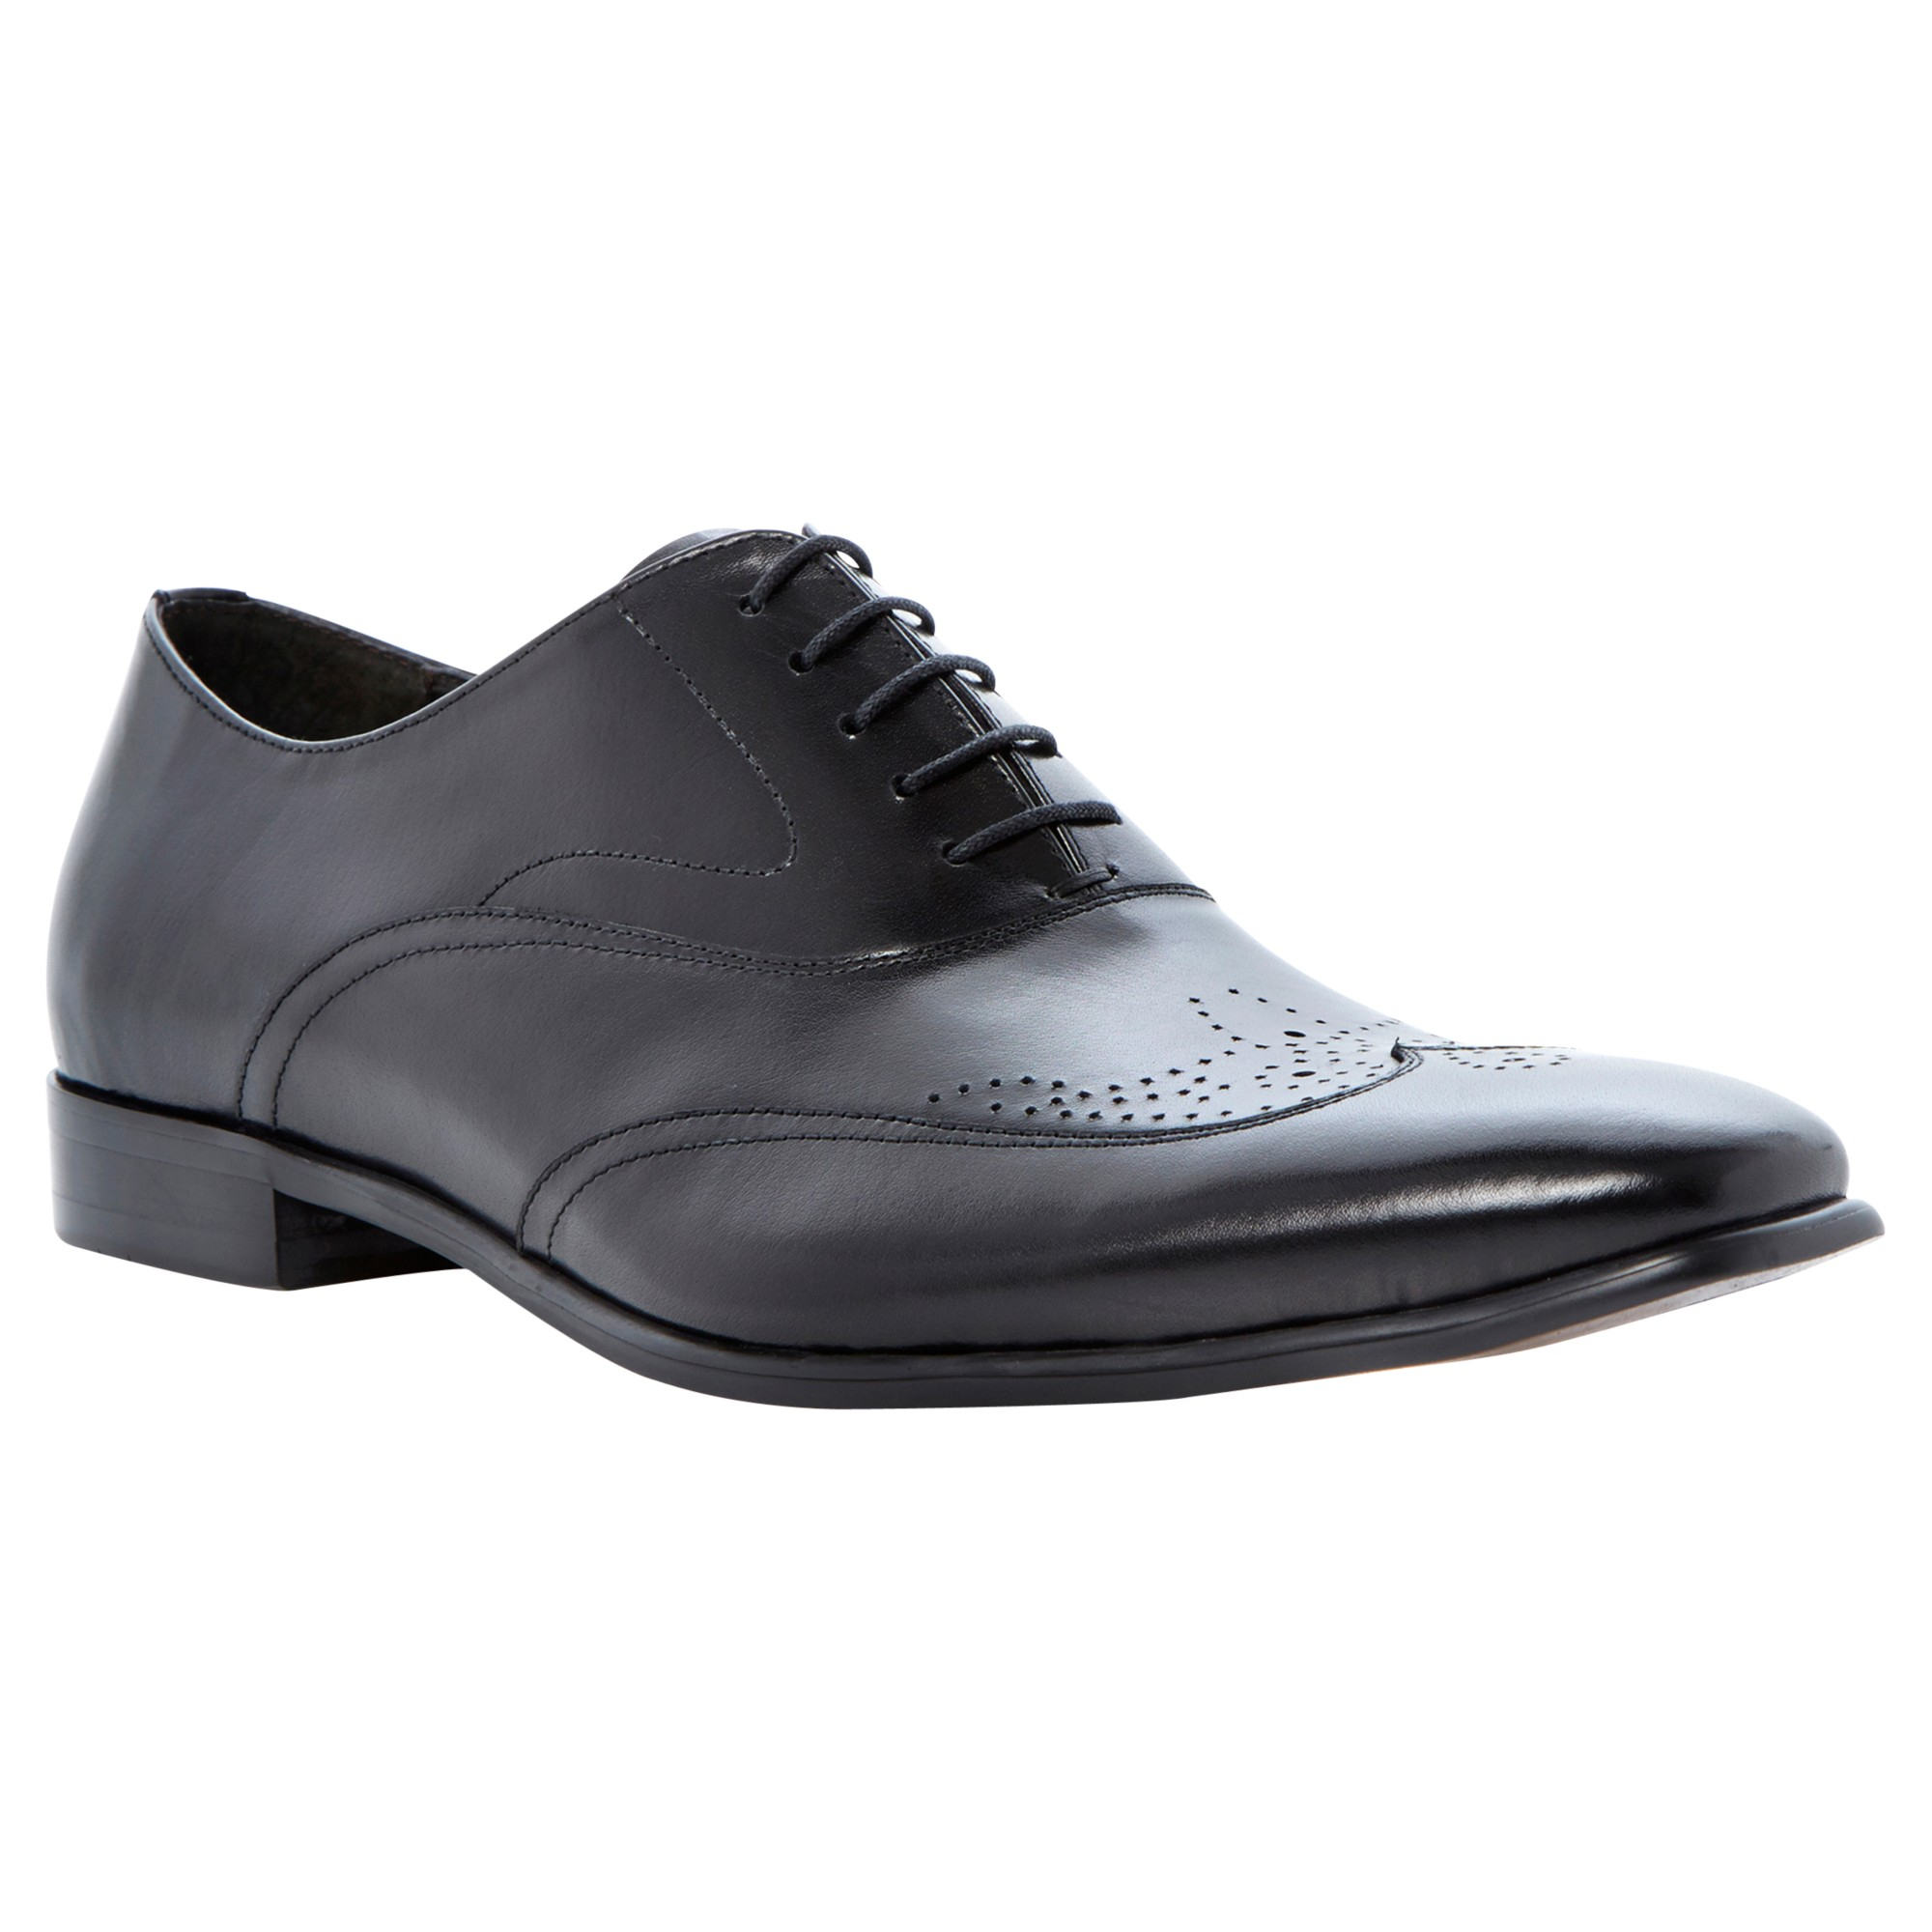 Dune Renegades Leather Brogue Monk Shoes in Black for Men